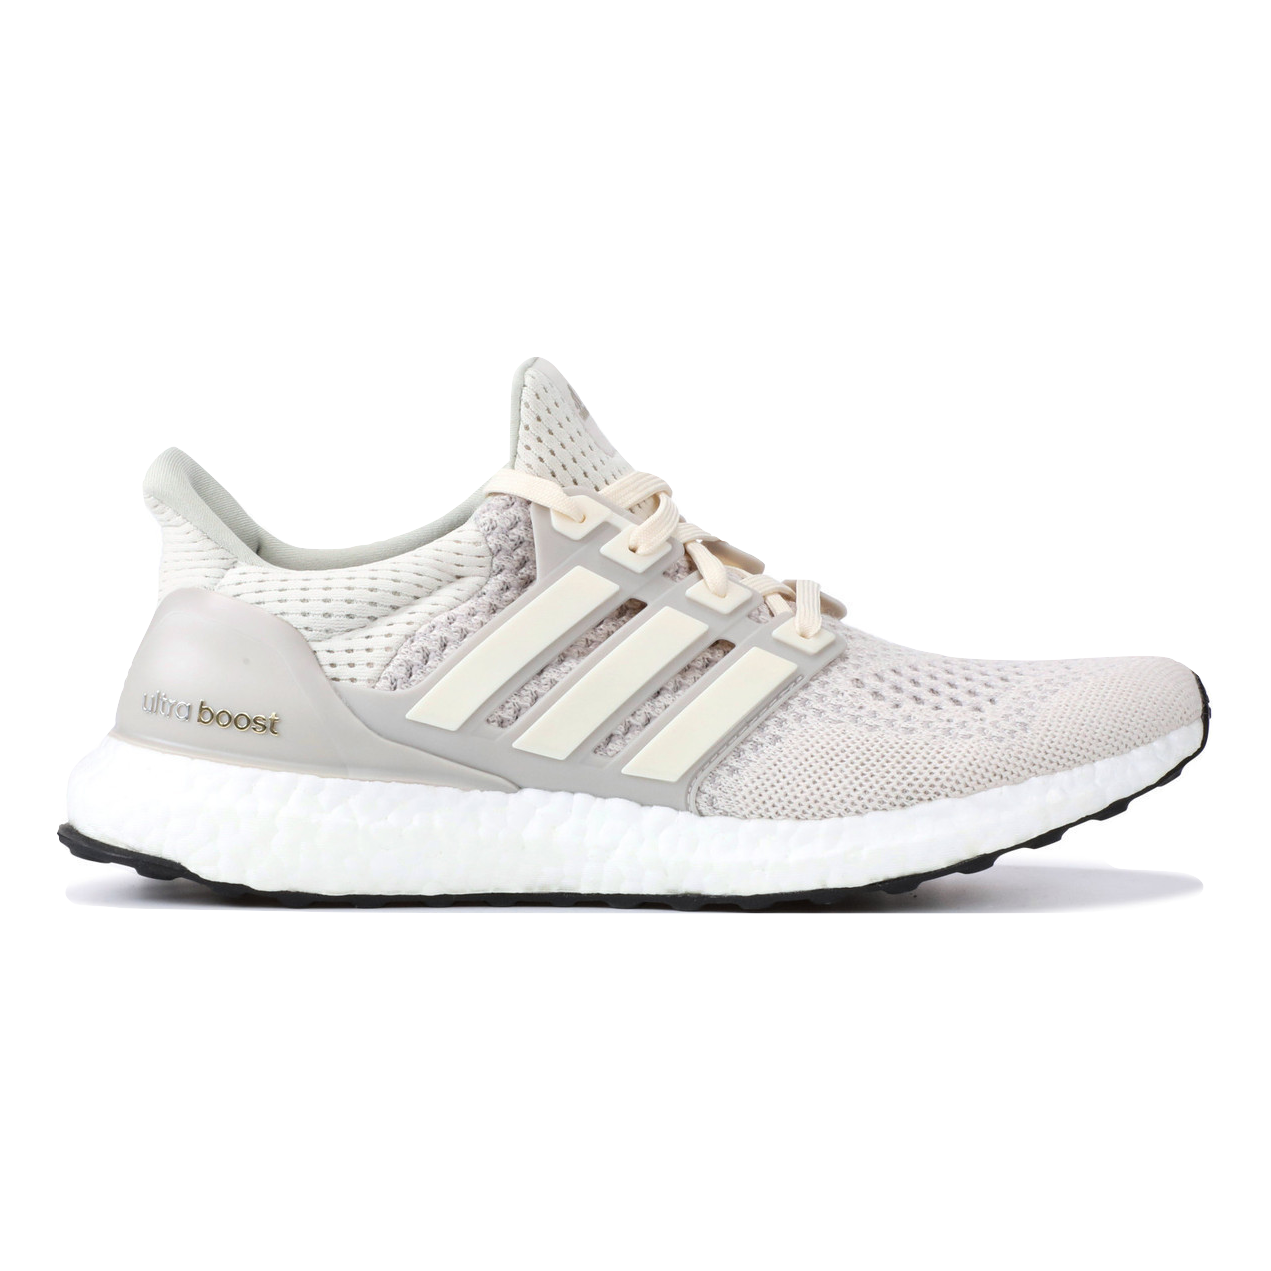 Ultra Boost Ltd -